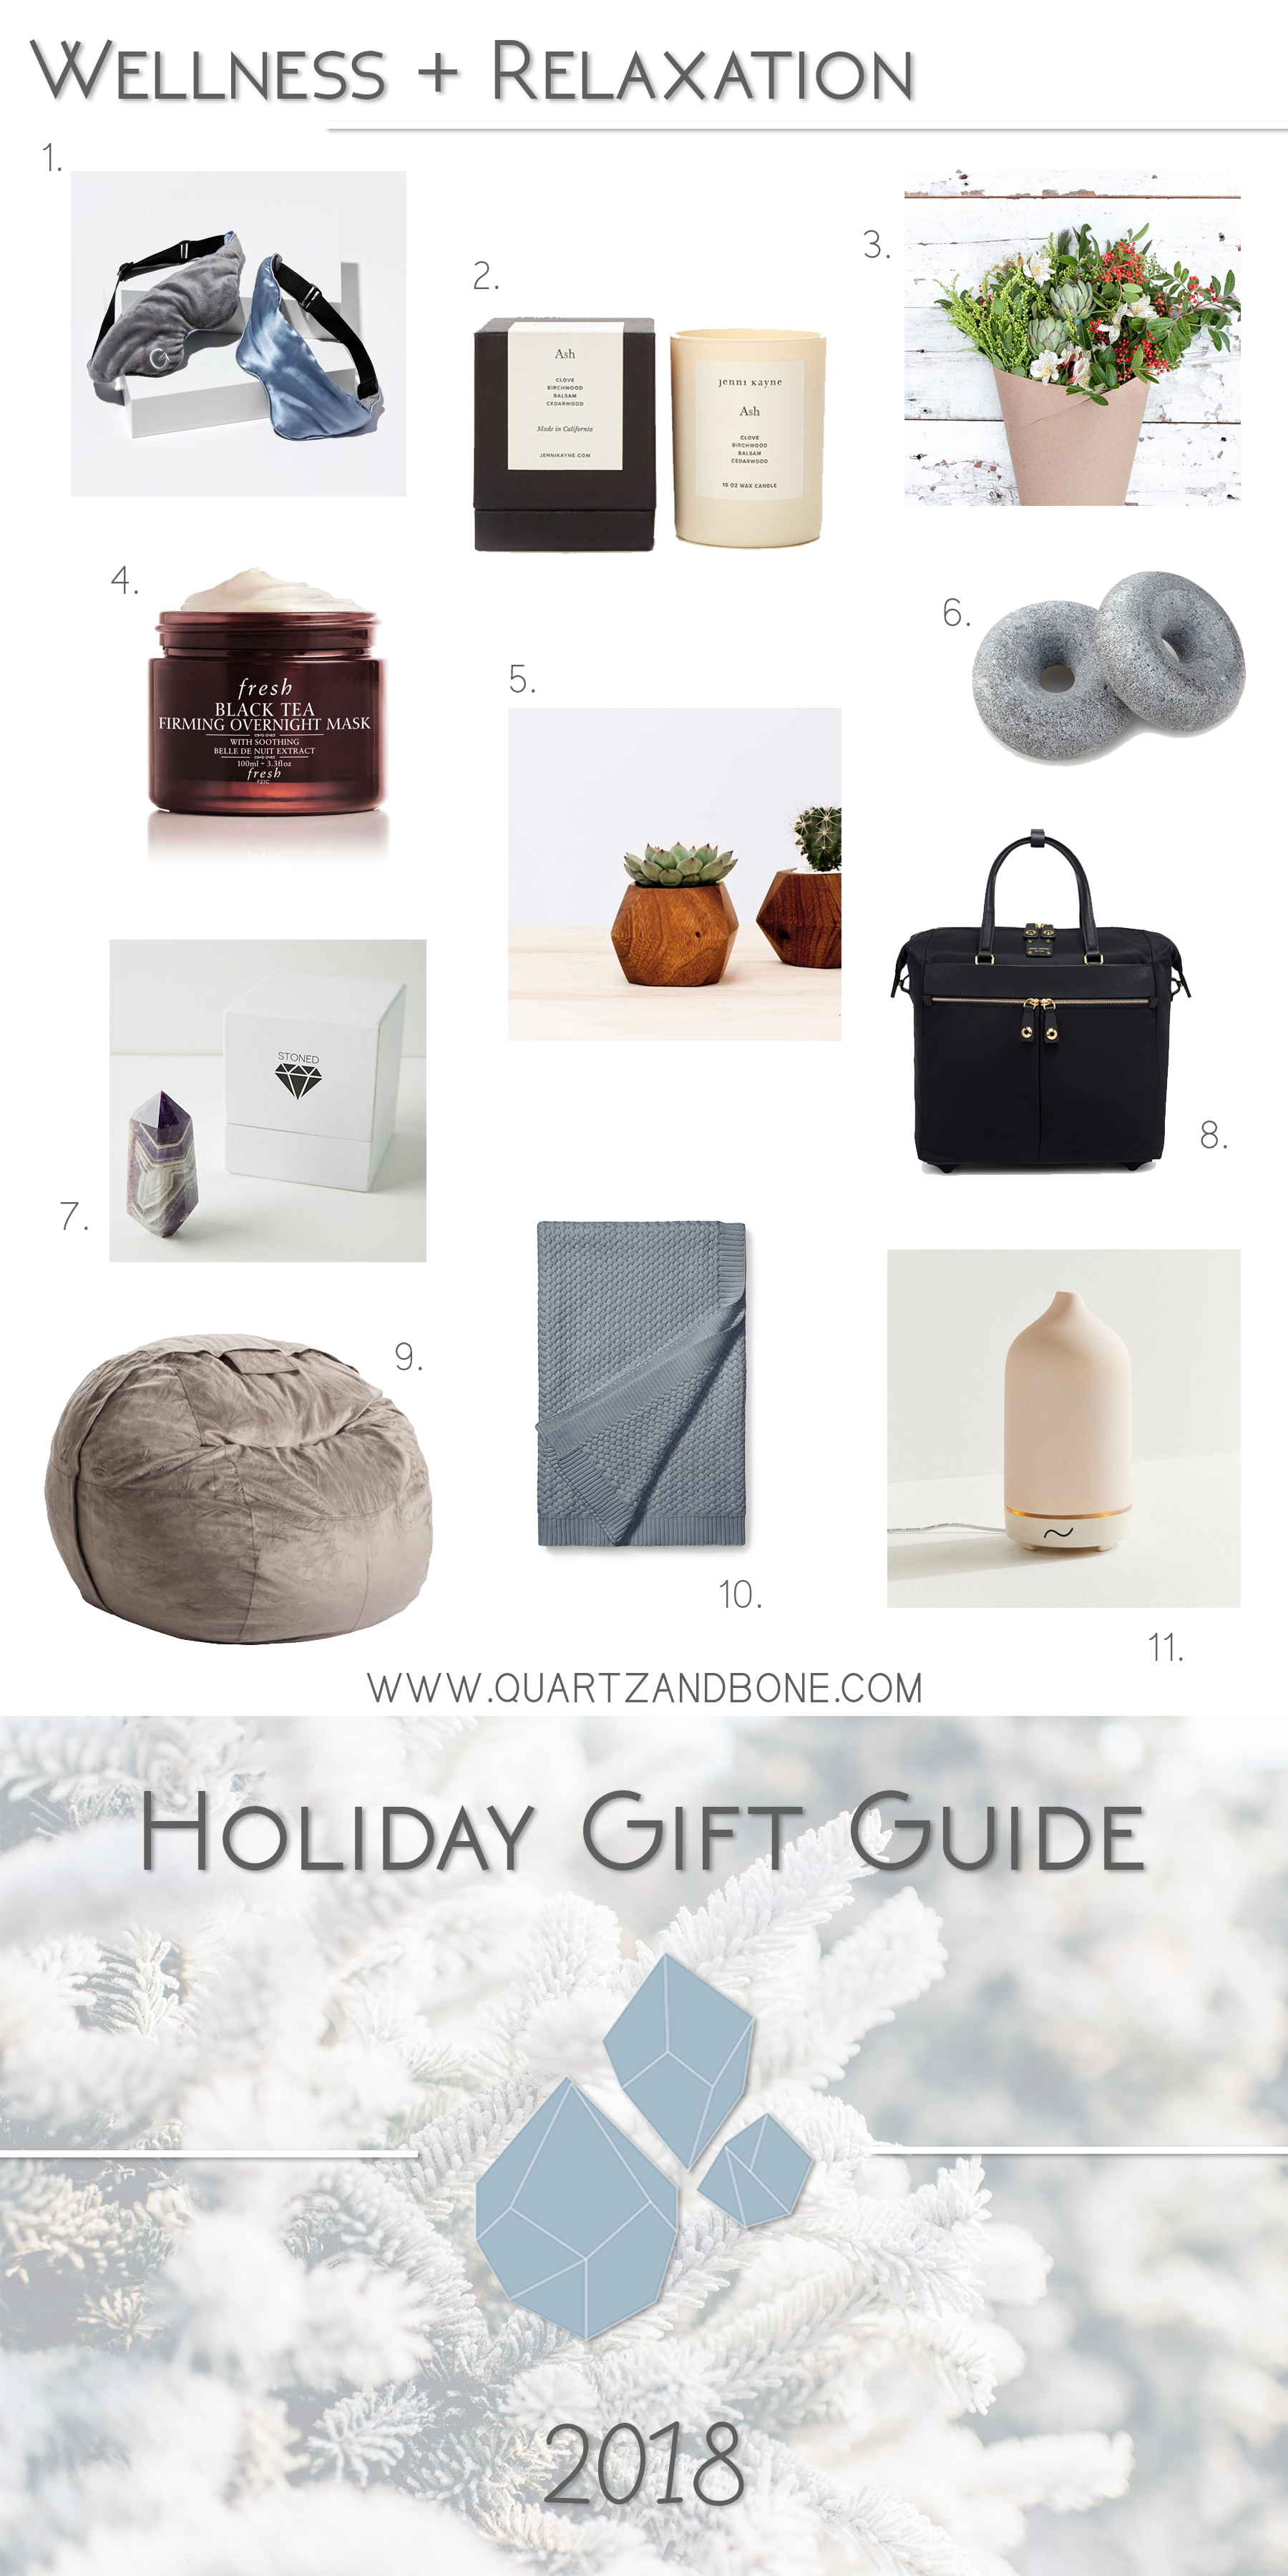 Gift Guide - Holiday 2018_Wellness.png